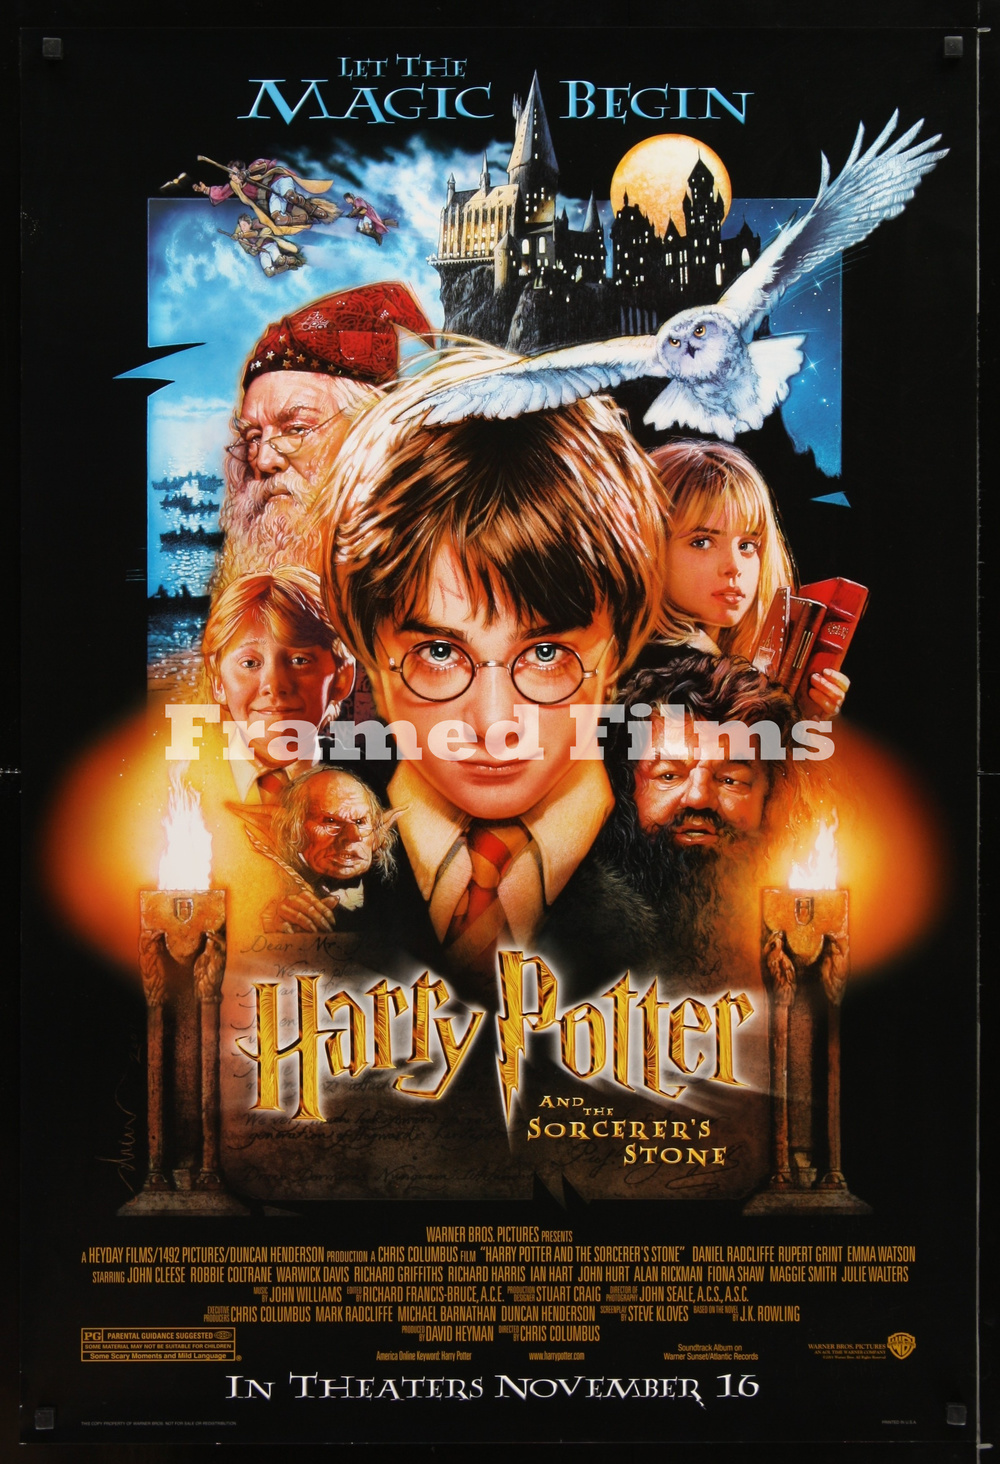 harry_potter_and_the_sorcerers_stone_advance_dupe1_MF01373_L.jpg